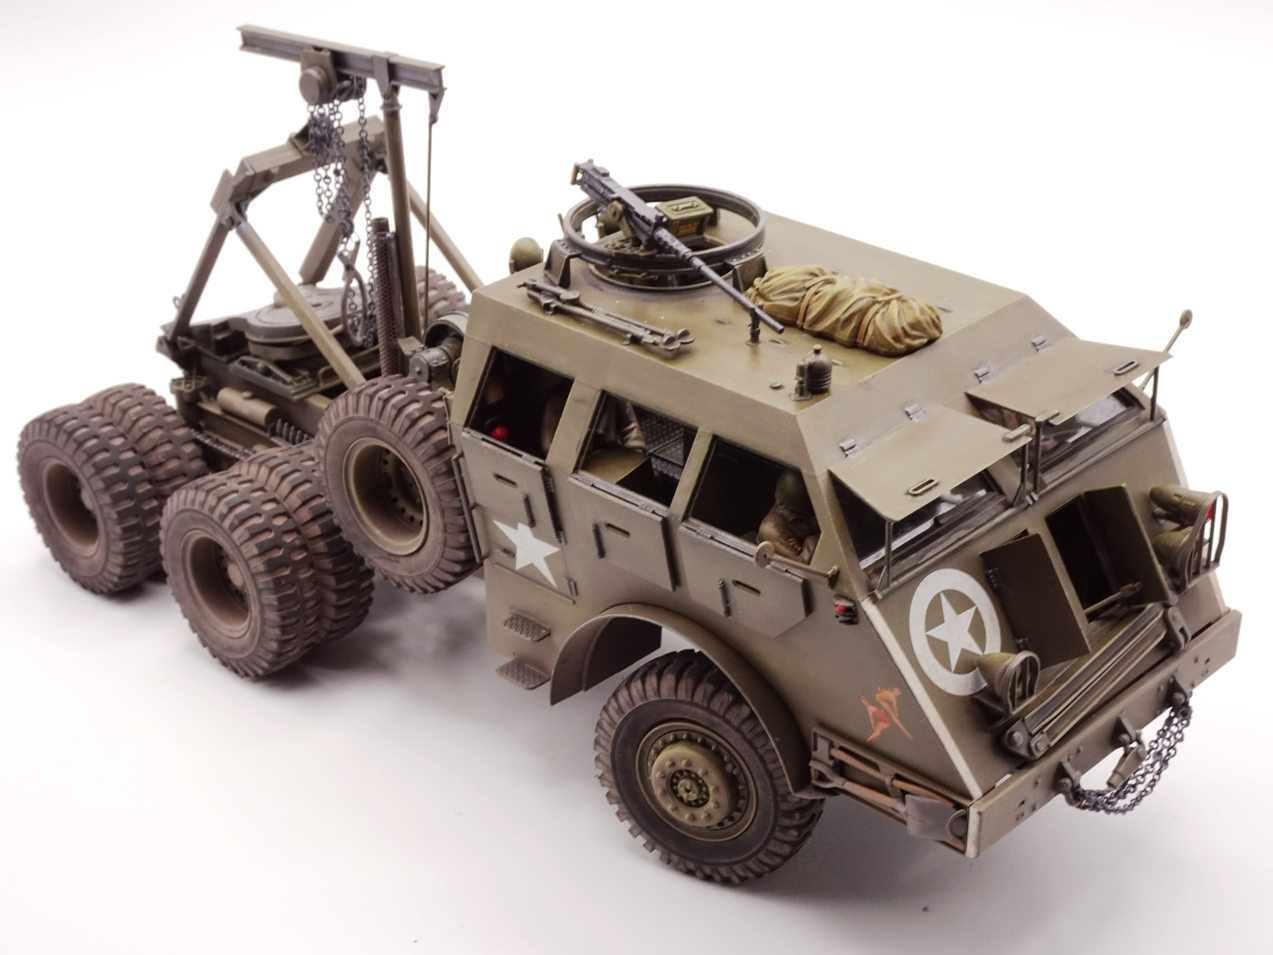 [Tamiya 1/35] M26 Armored tank recovery vehicle réf. 35244 - Page 4 M26-fin-1